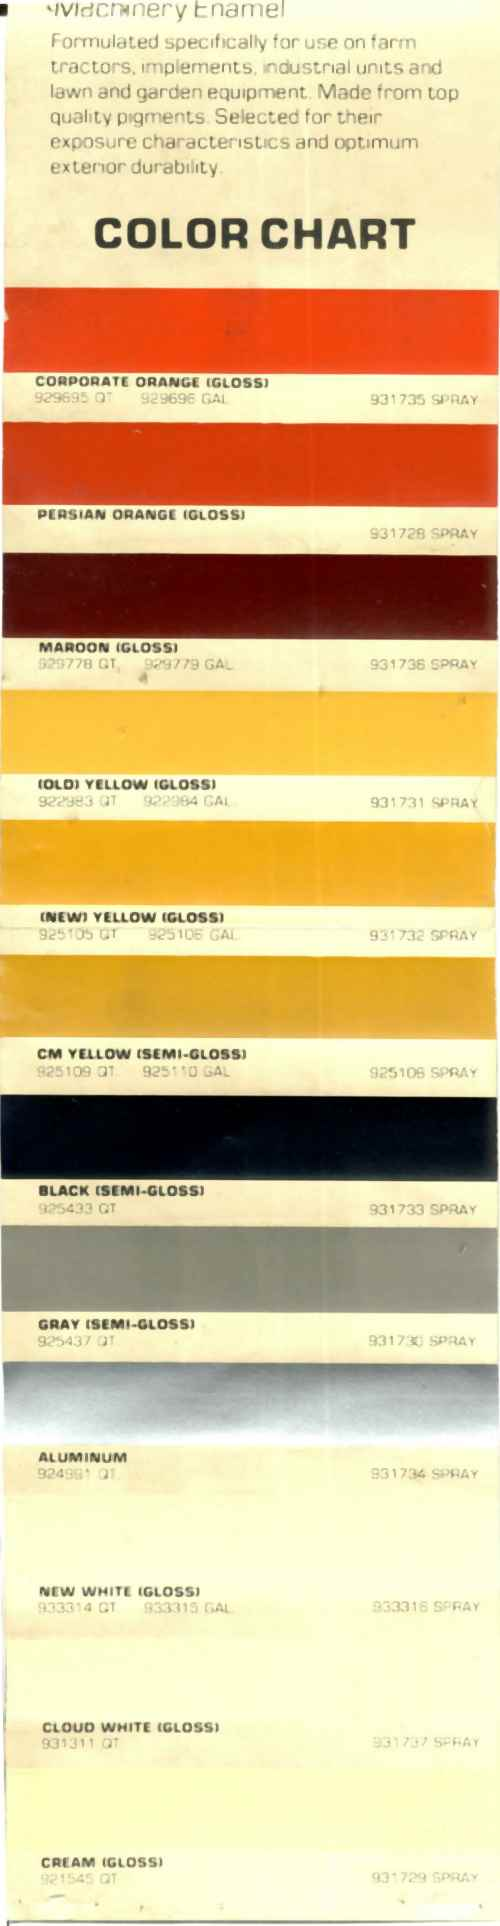 John deere paint colors paint color ideas john deere paint color codes ideas geenschuldenfo Gallery